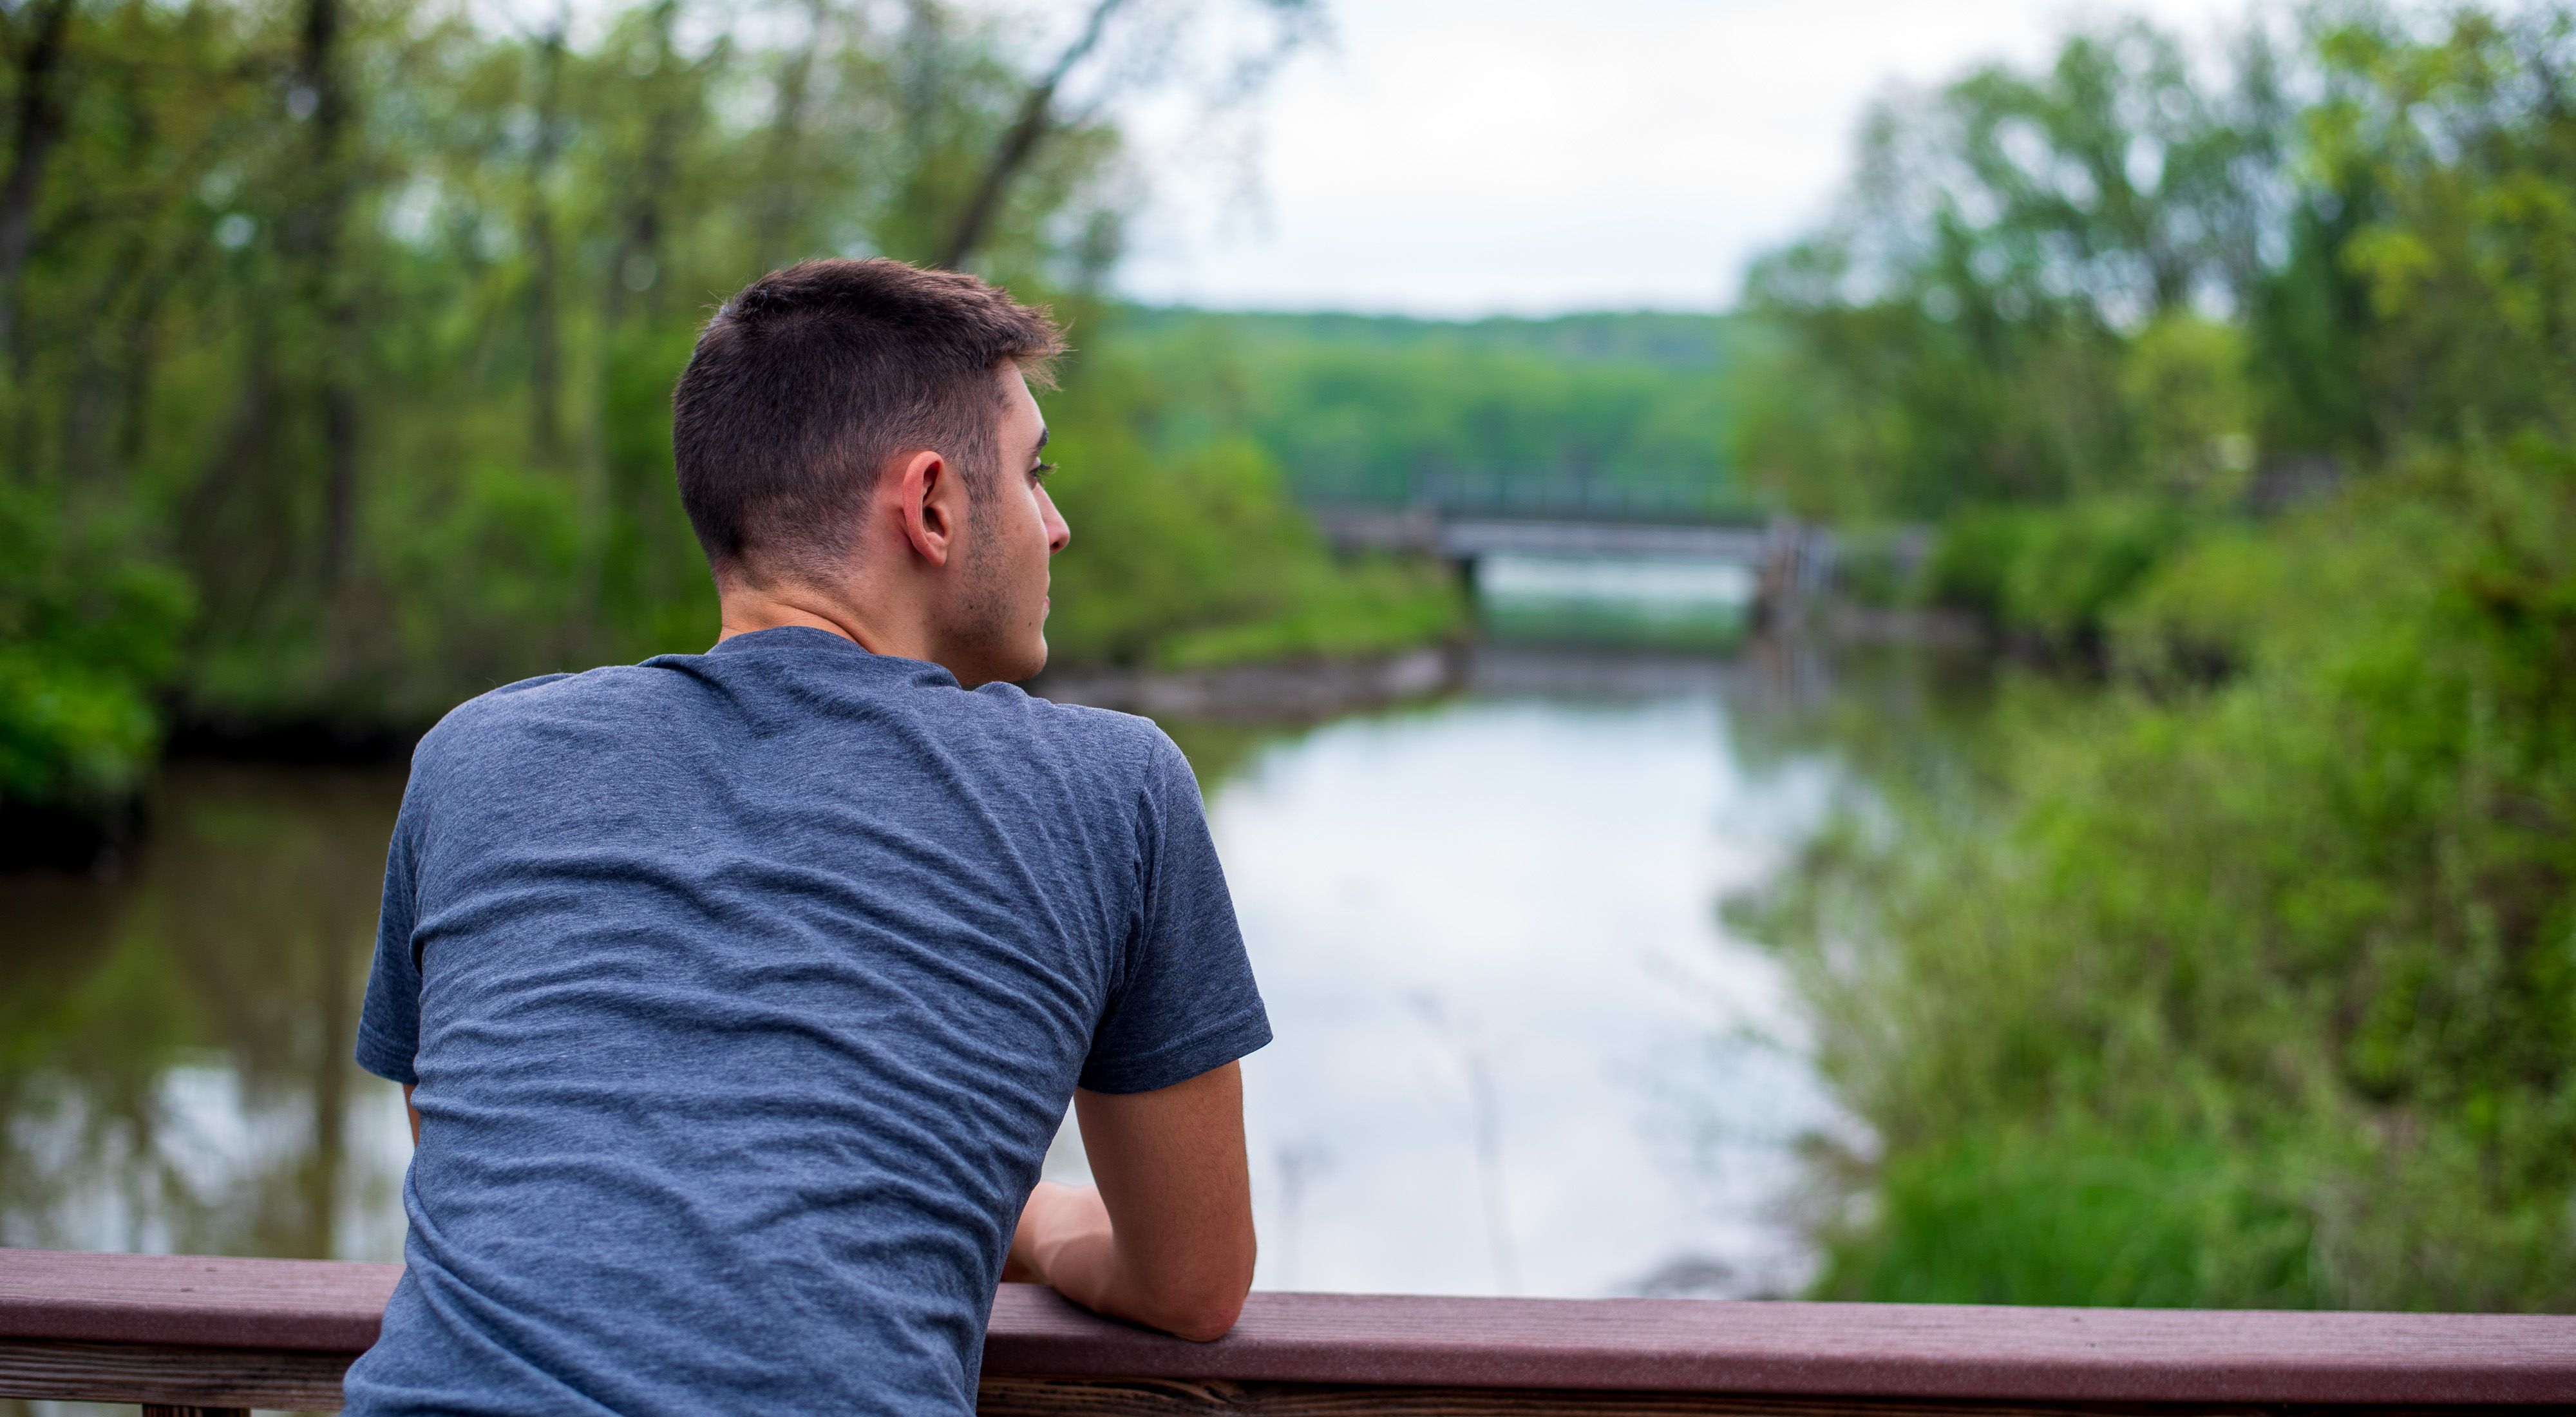 A person leaning on a railing and looking out over a river.